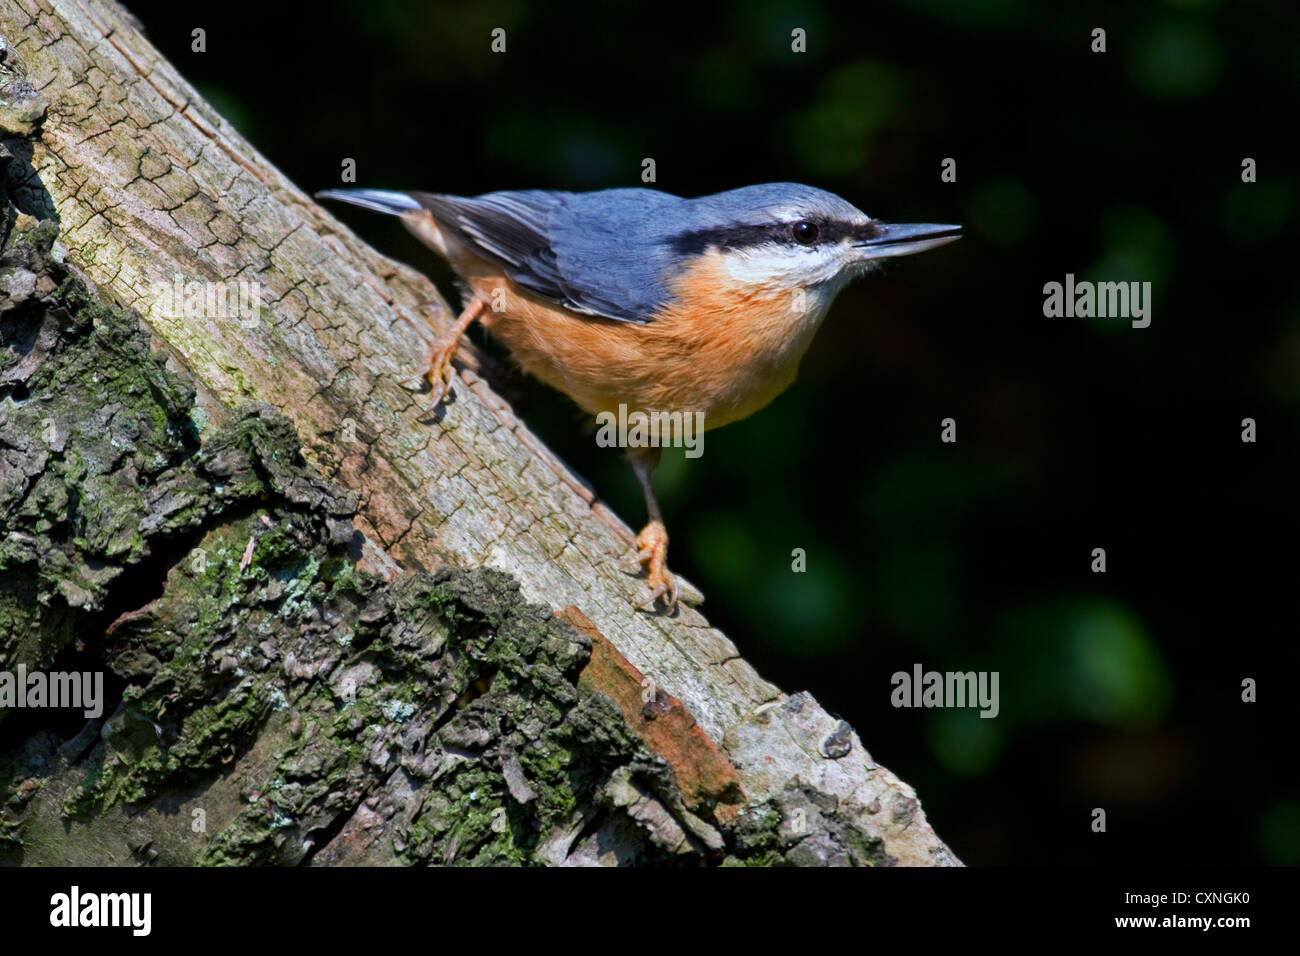 Eurasian nuthatch (Sitta europaea) foraging on tree trunk in forest - Stock Image